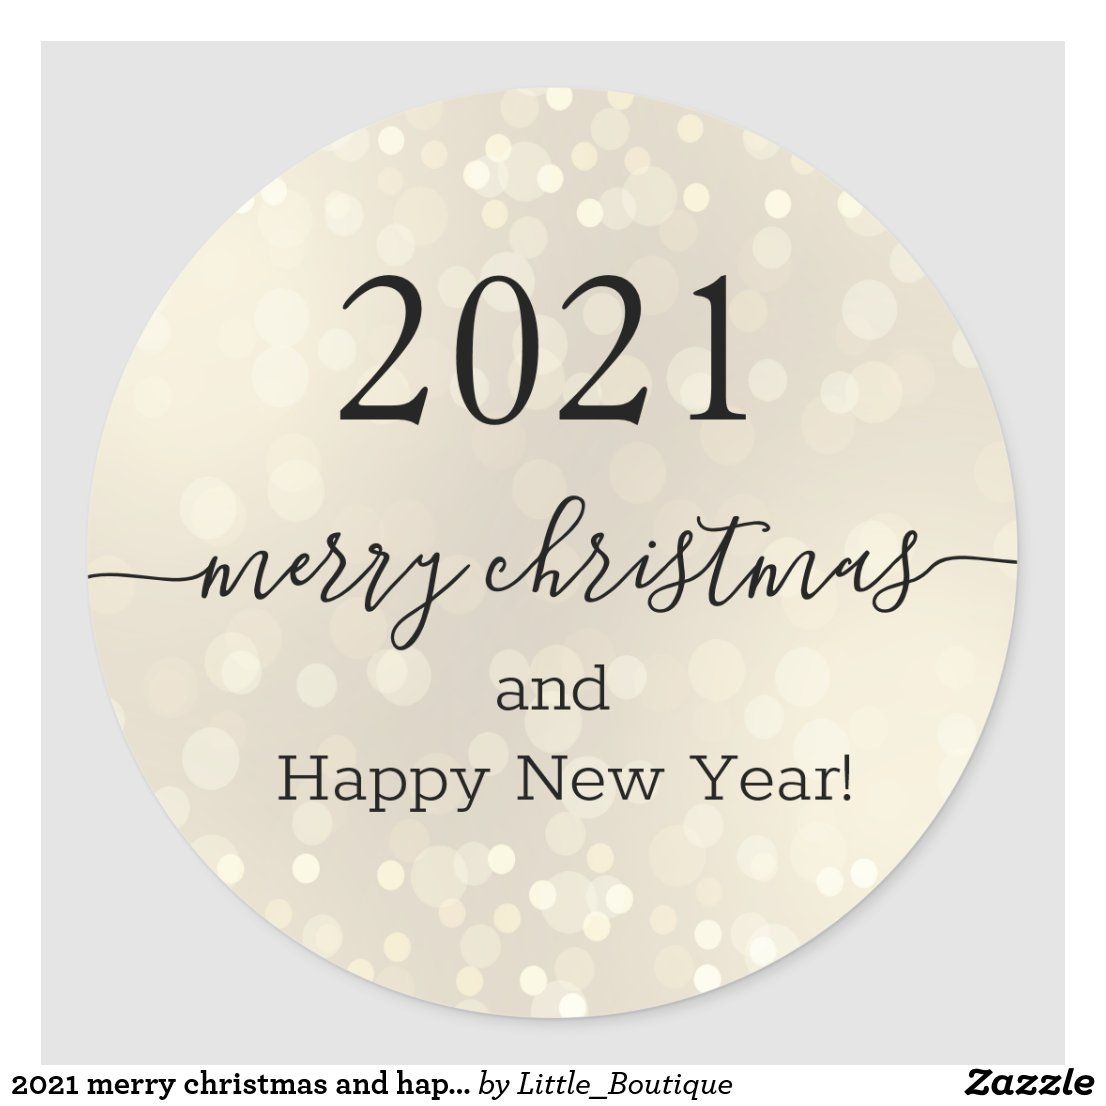 2021 Merry Christmas And Happy New Year Classic Round Sticker Zazzle Com In 2021 Merry Christmas And Happy New Year Happy New Year Pictures Happy New Year